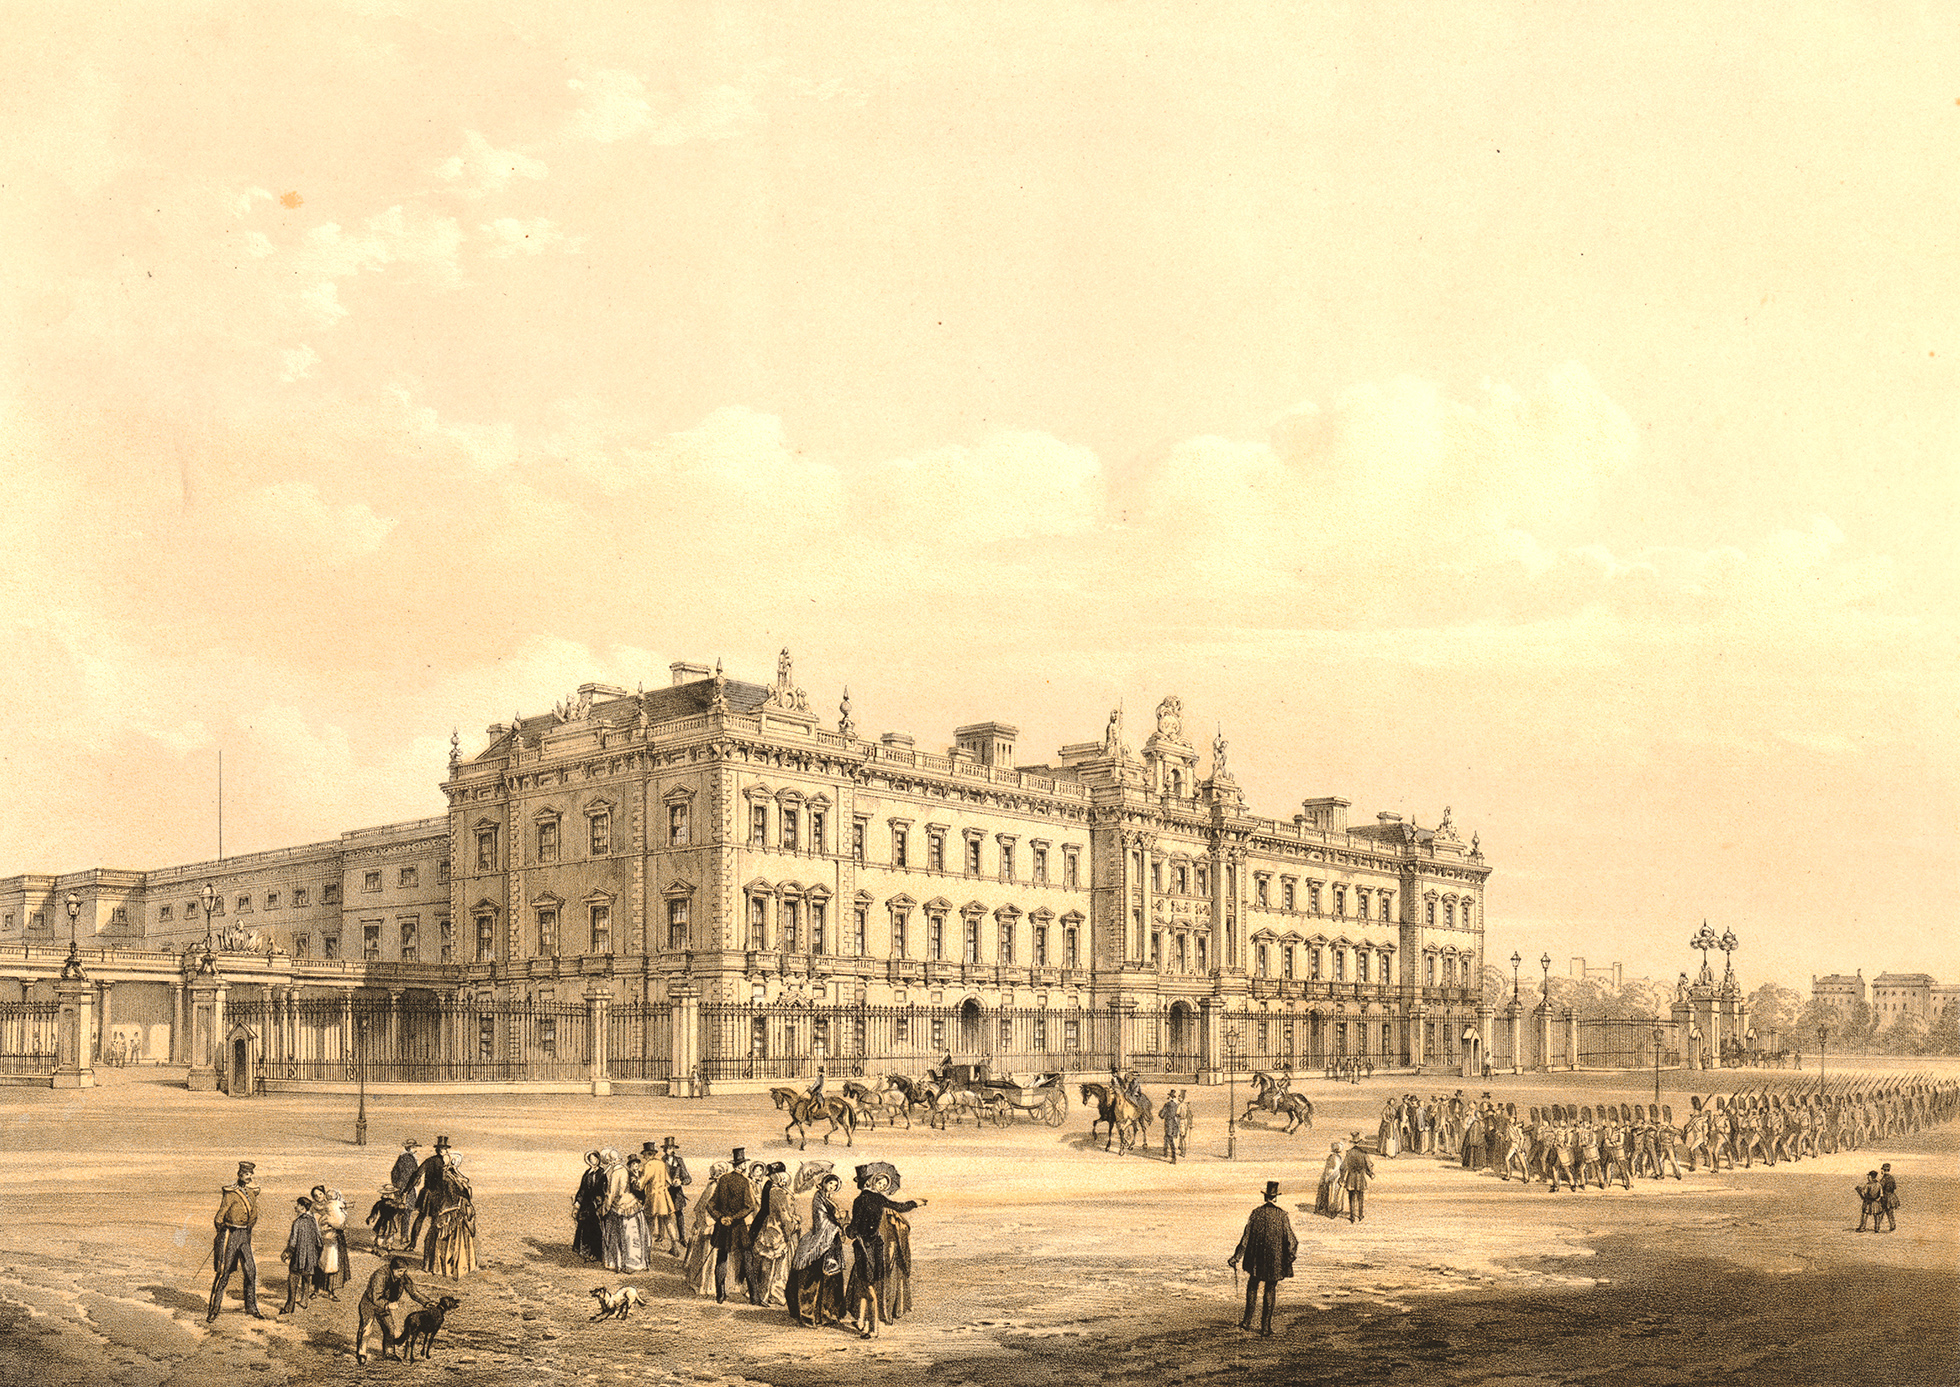 View of Buckingham Palace from the Mall, showing the new east front designed by Blore and built by Cubitt in 1847. There are marching guards in front of palace to right, and other figures in foreground to left.